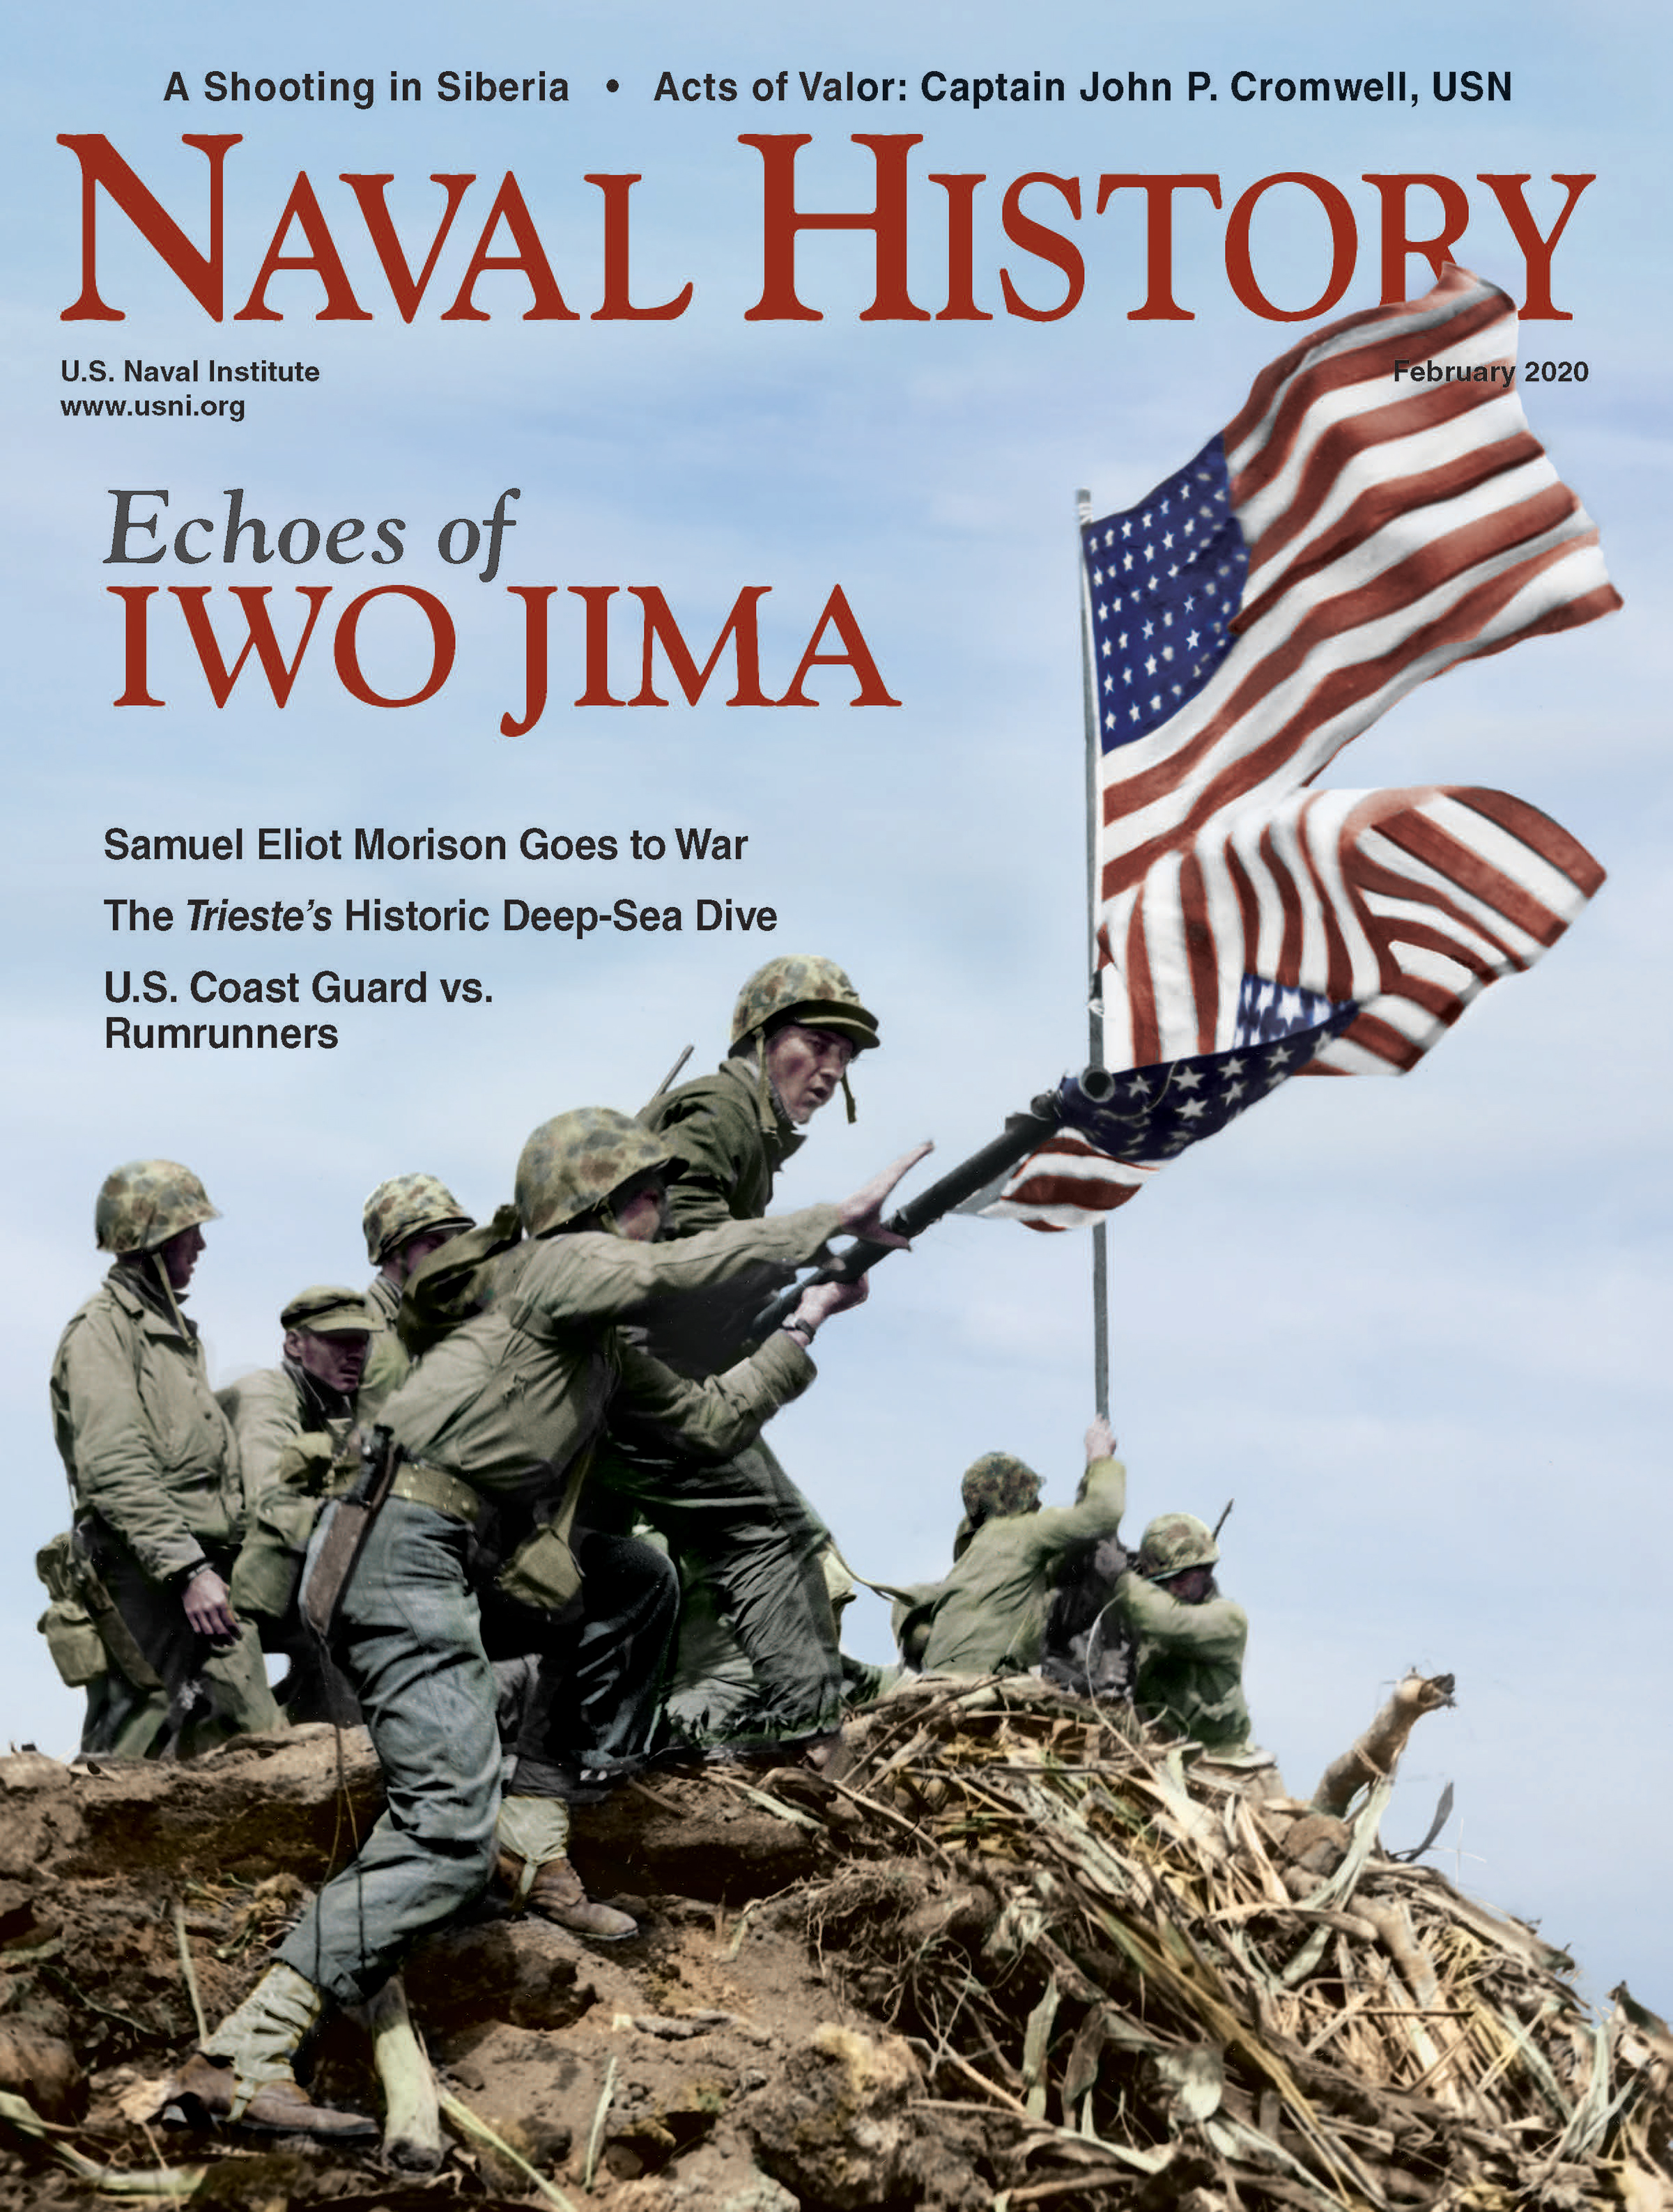 U.S. flags over Iwo Jima's Mount Suribachi grace the cover